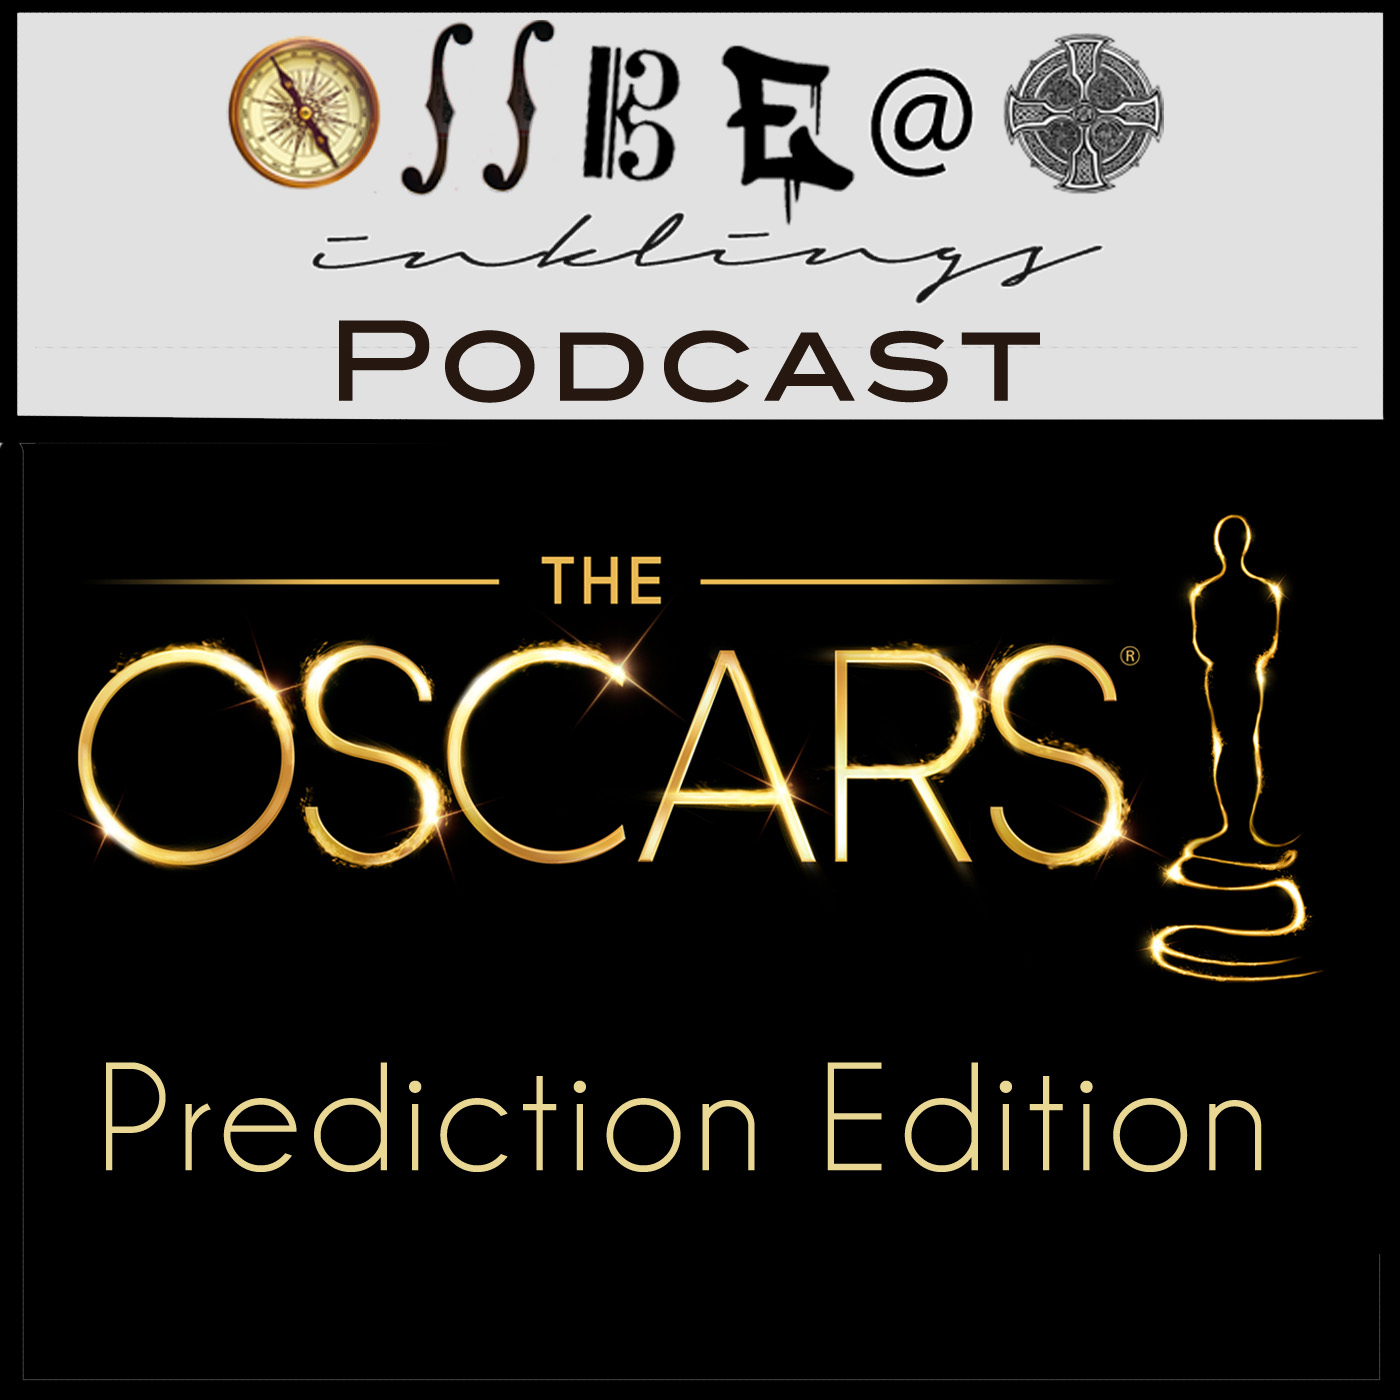 Podcast oscars